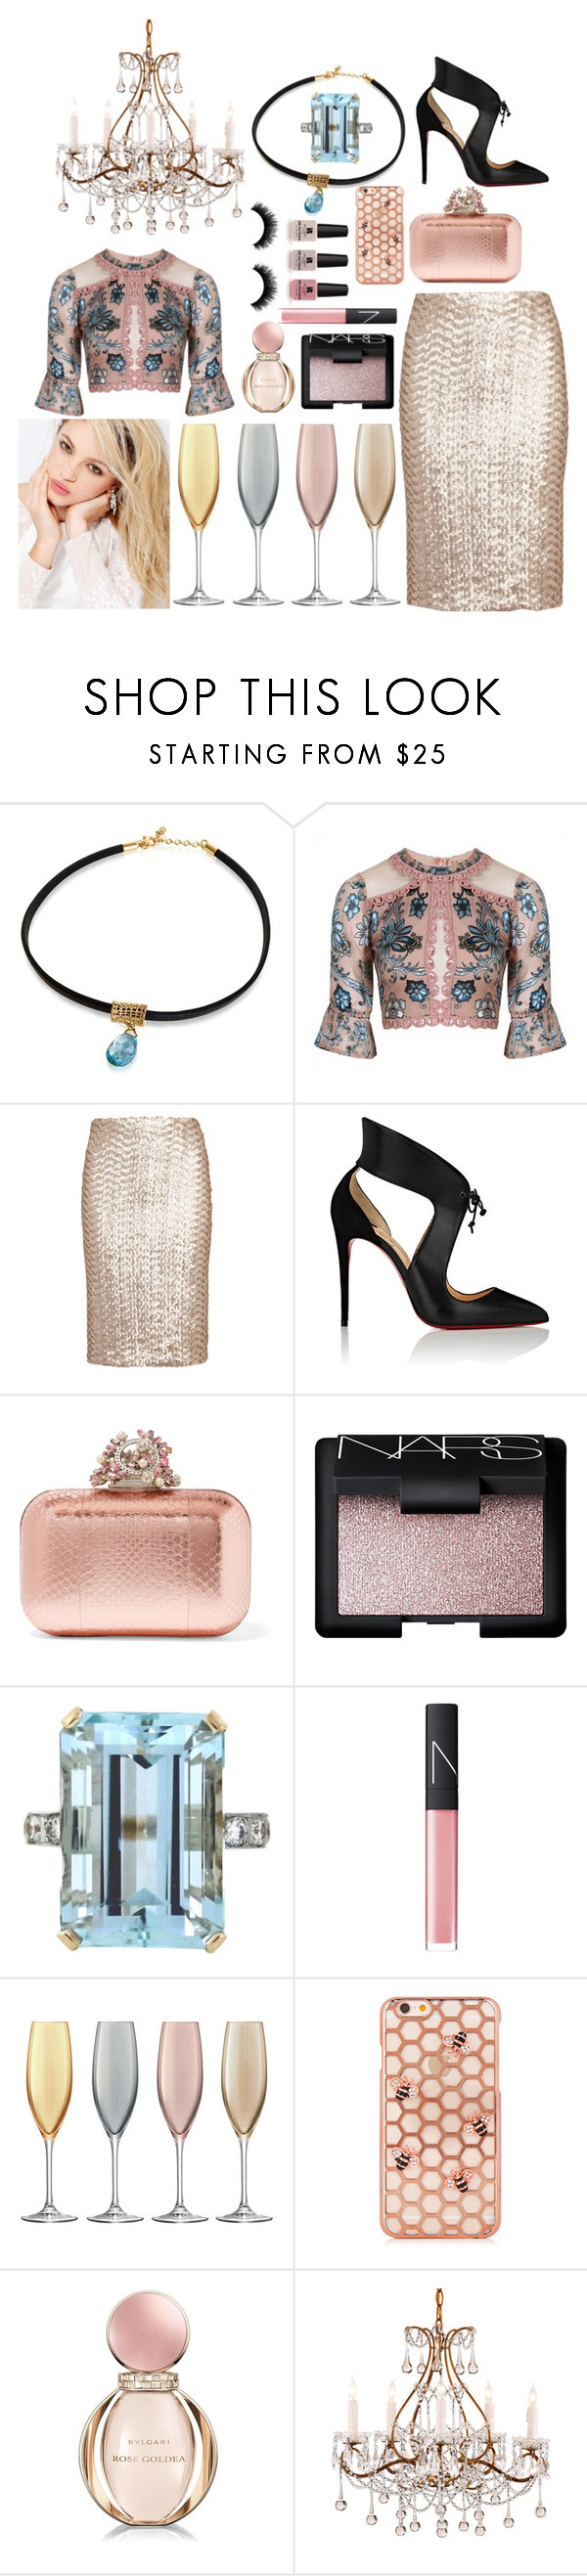 """Pink & Some Blue"" by pulseofthematter ❤ liked on Polyvore featuring For Love & Lemons, Alice + Olivia, Christian Louboutin, Jimmy Choo, NARS Cosmetics, LSA International, Bulgari, Victoria's Secret and Silvana"